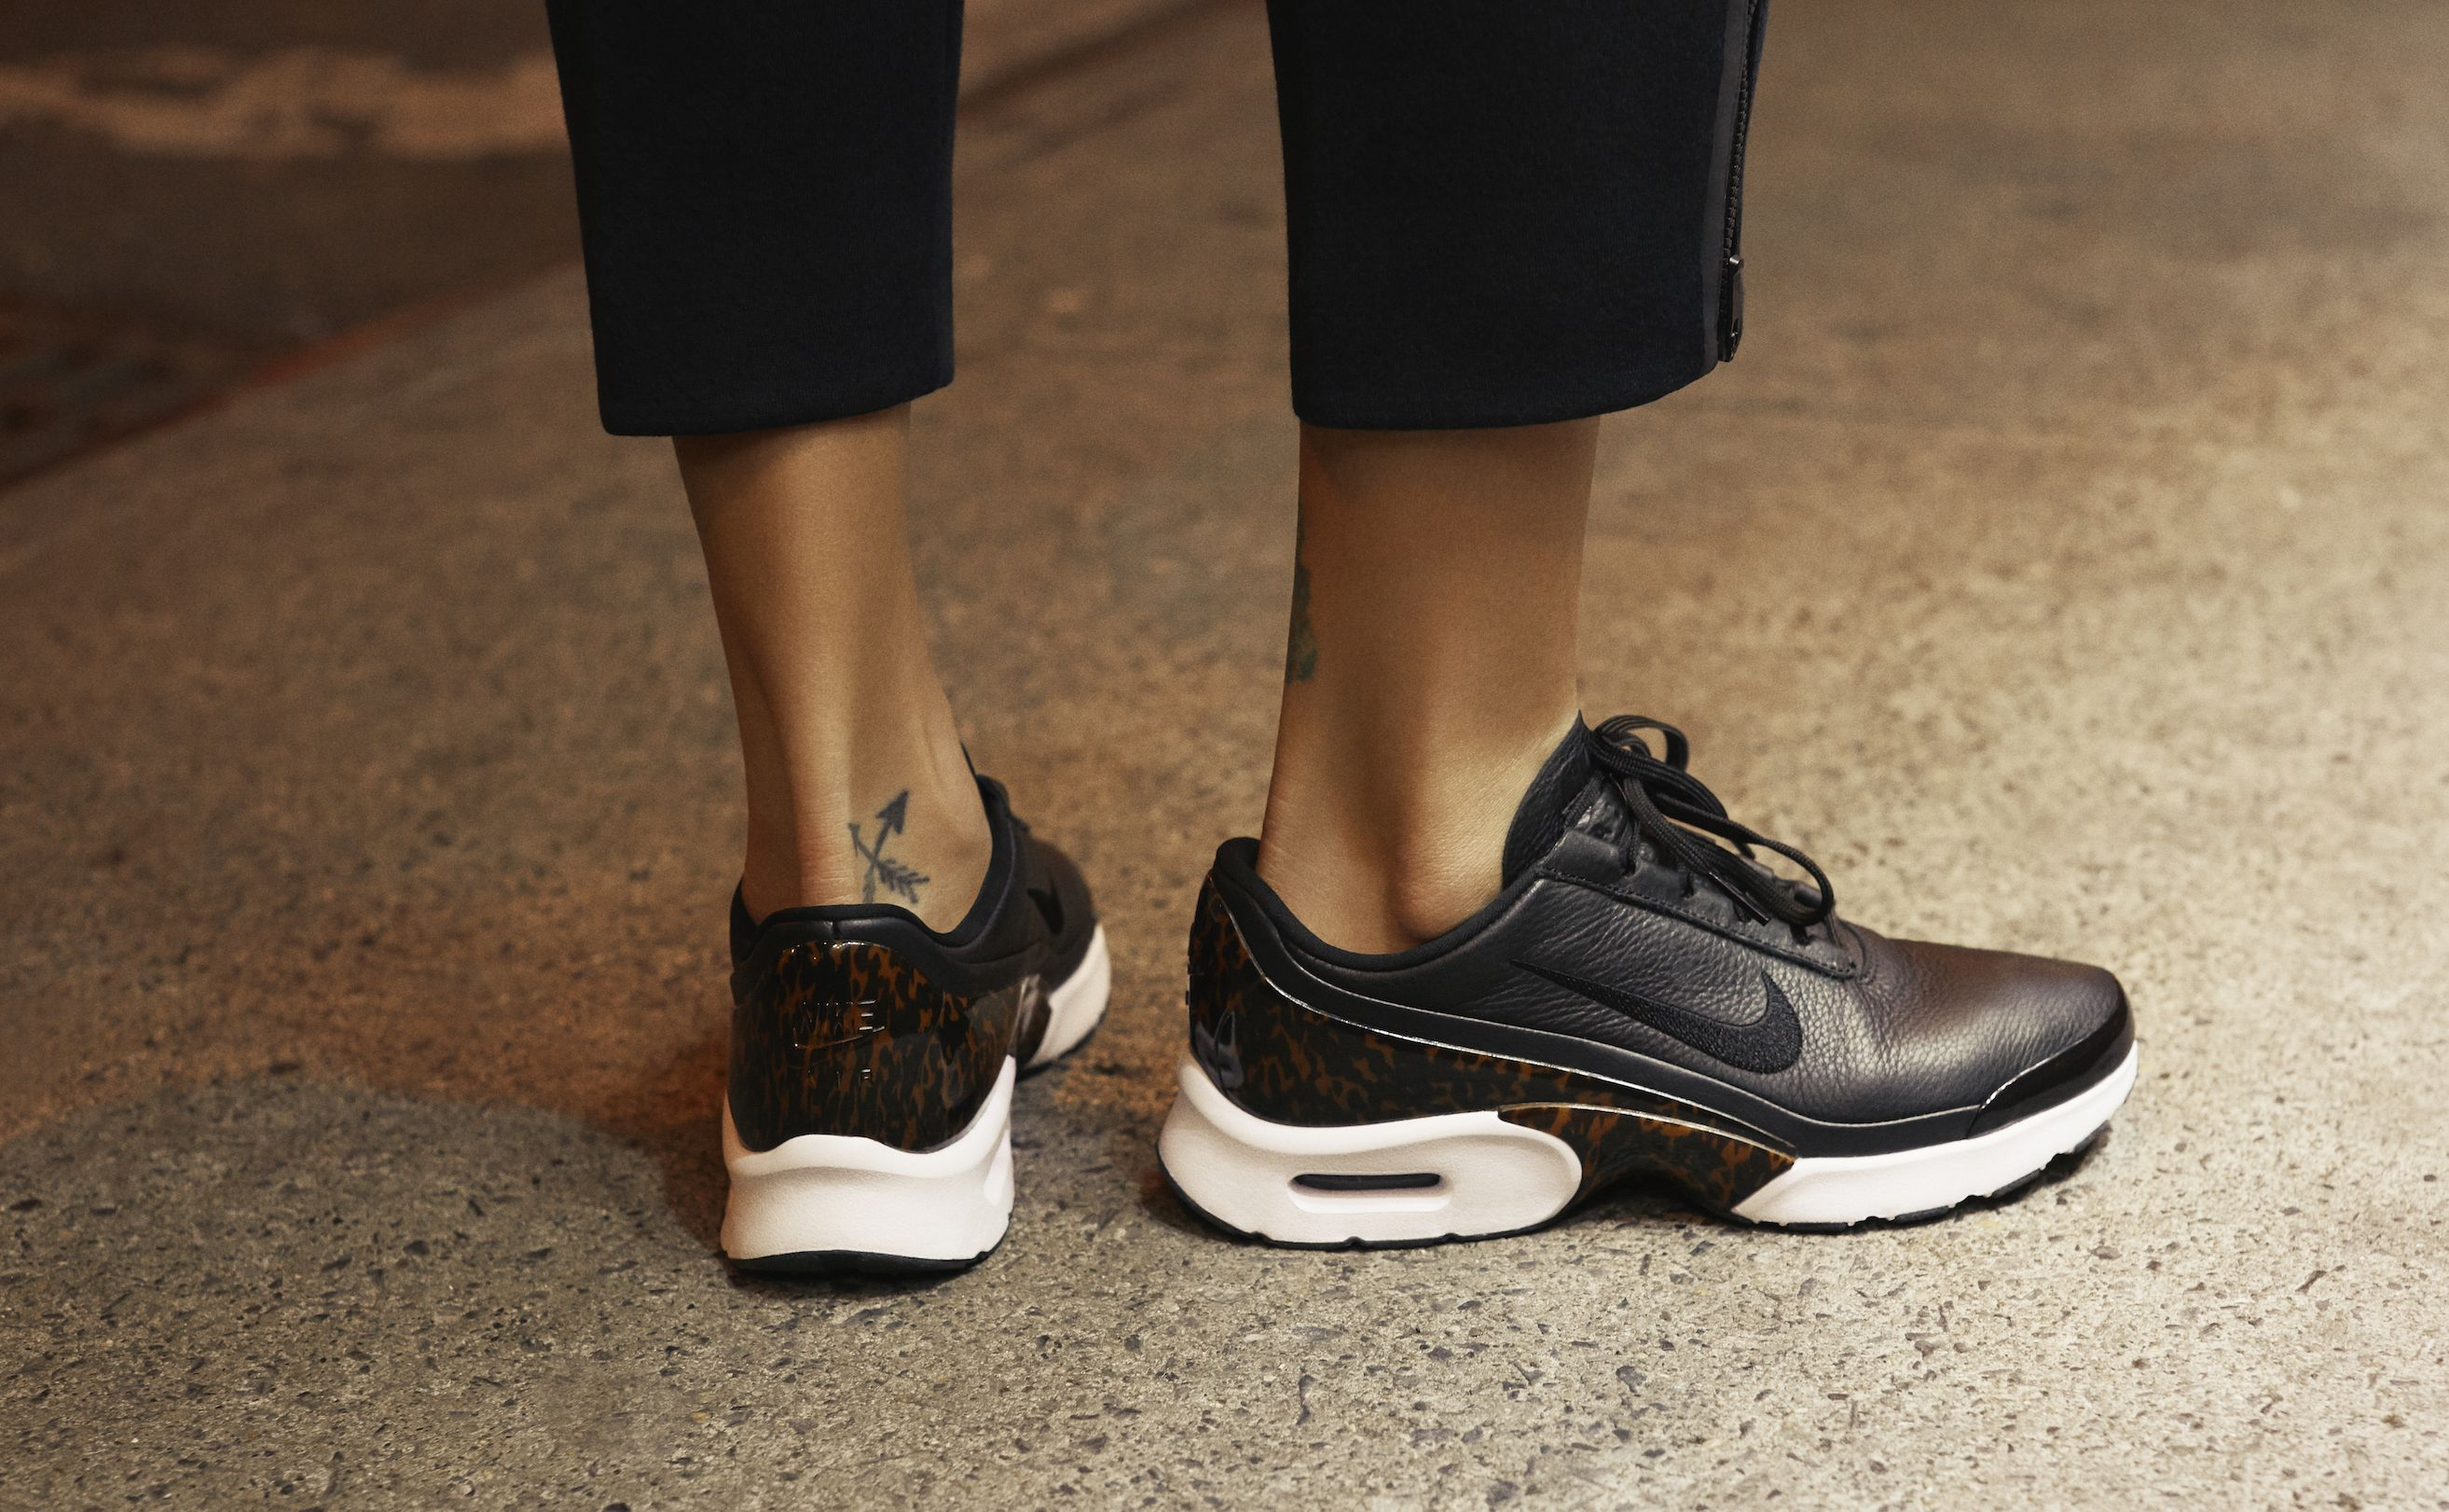 sneakers women nike air max jewell lux tortoise shell couturing sneakers pinterest. Black Bedroom Furniture Sets. Home Design Ideas